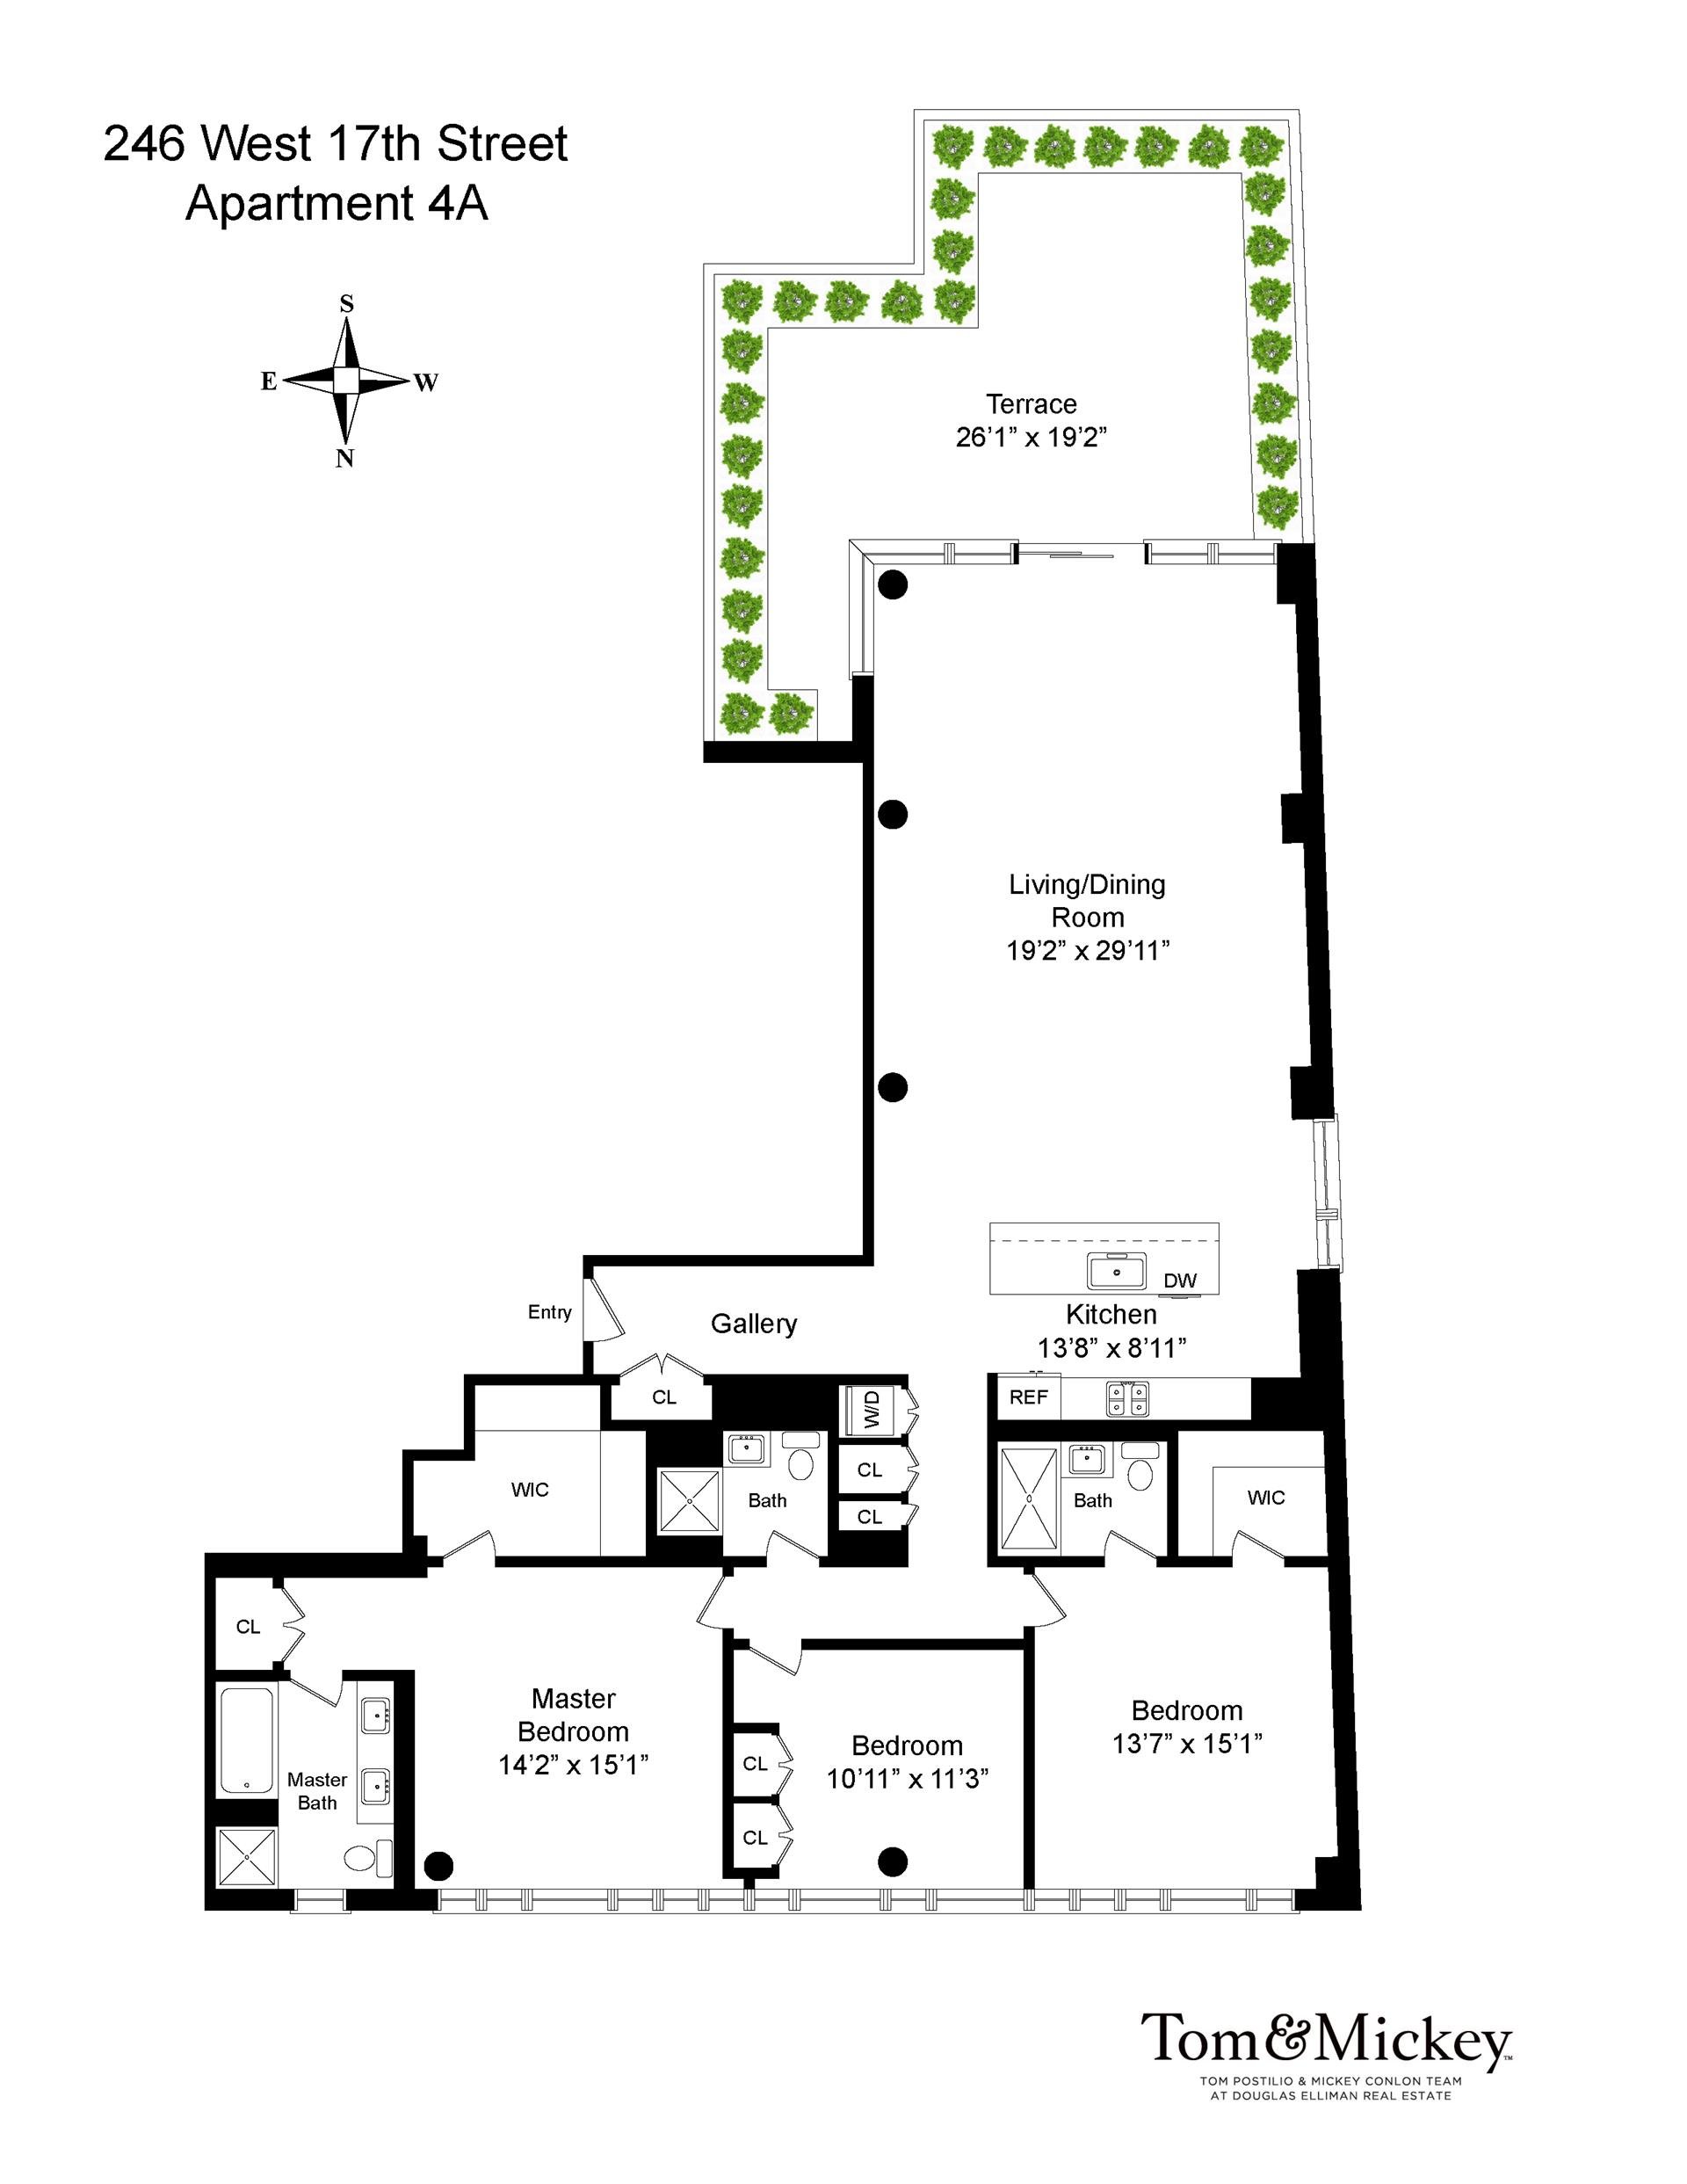 Floor plan of 246 West 17th St, 4A - Chelsea, New York